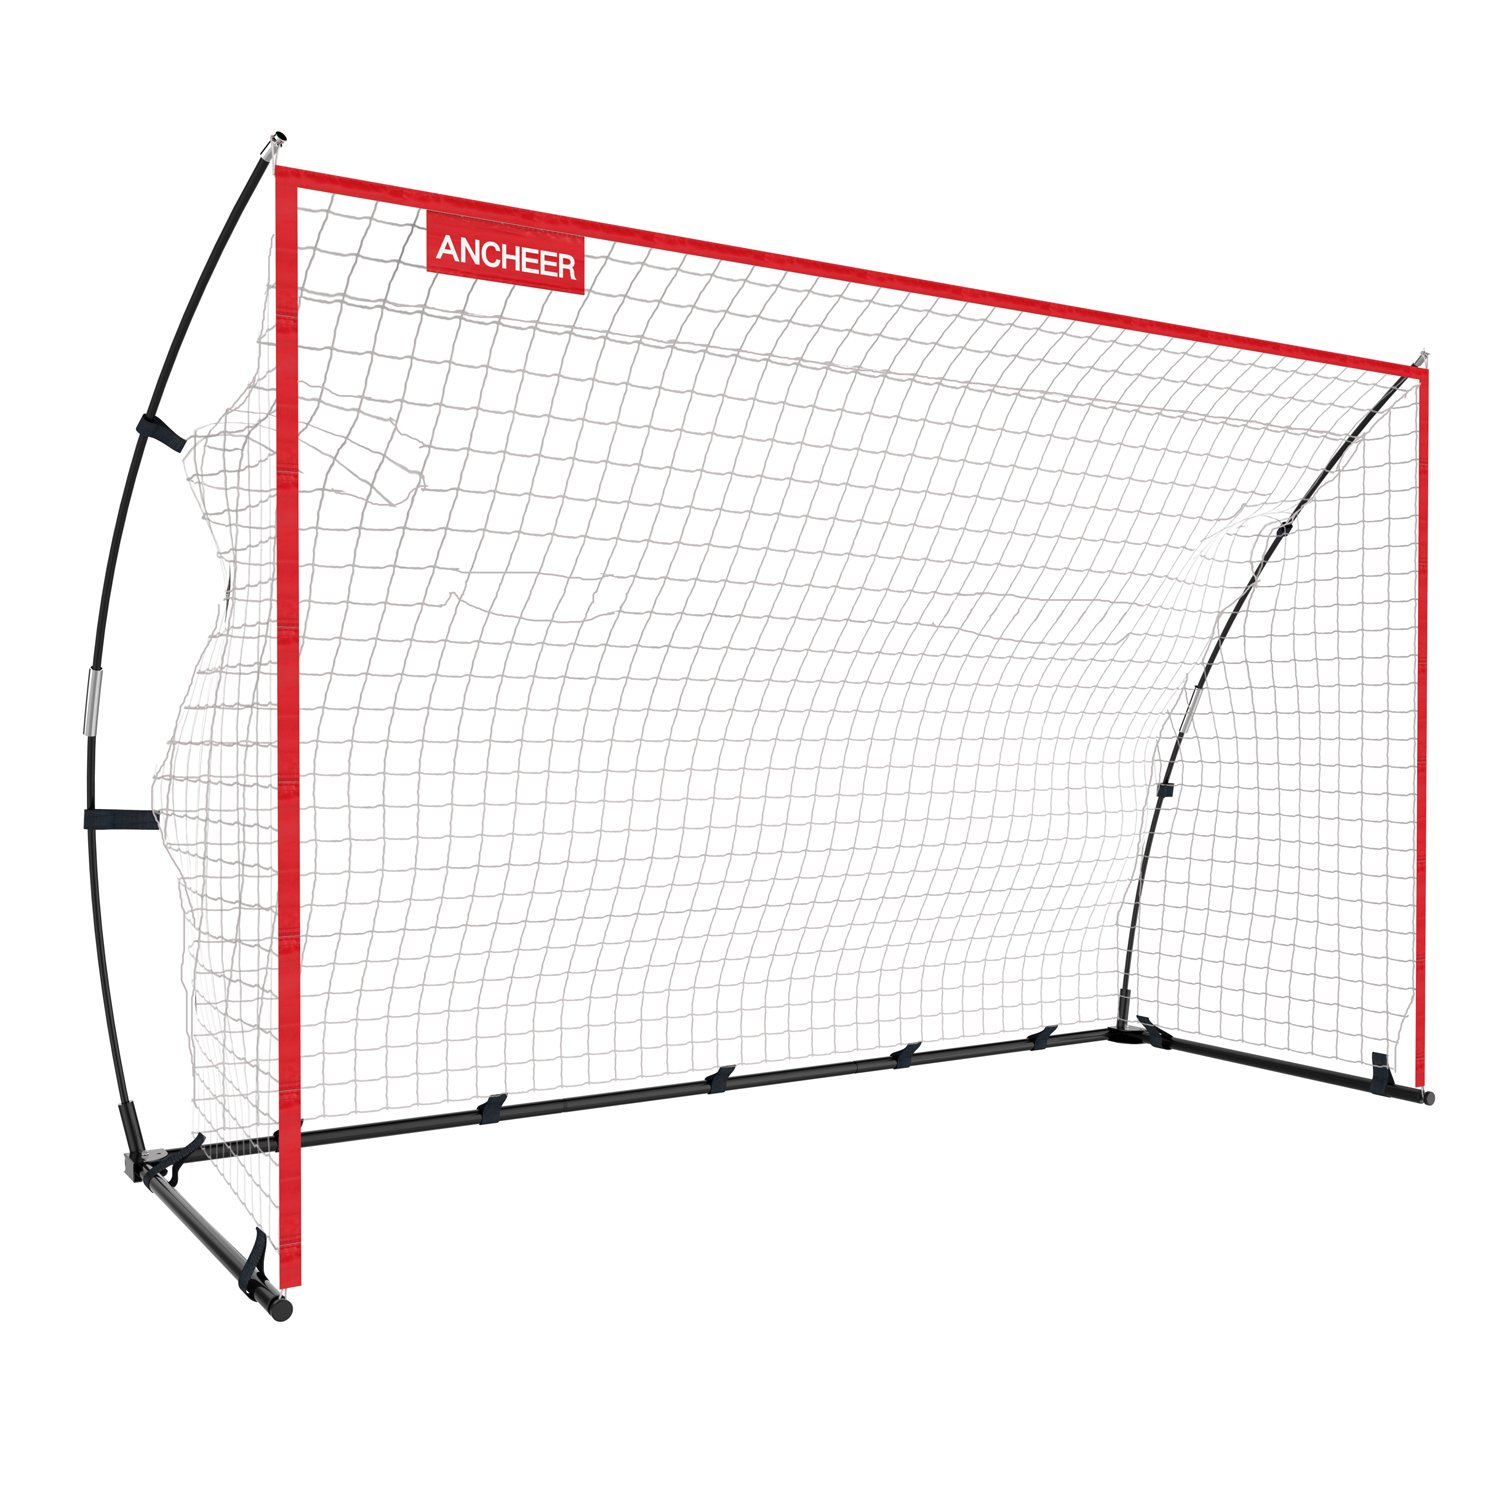 Global goal home 1 new home 1 new kids 1 global goal pro 1 - Ancheer Soccer Goal Portable Quick Set Soccer Goal Net Available In 12 X 6 Ft 8 X 5 Ft 6 X 4 Ft